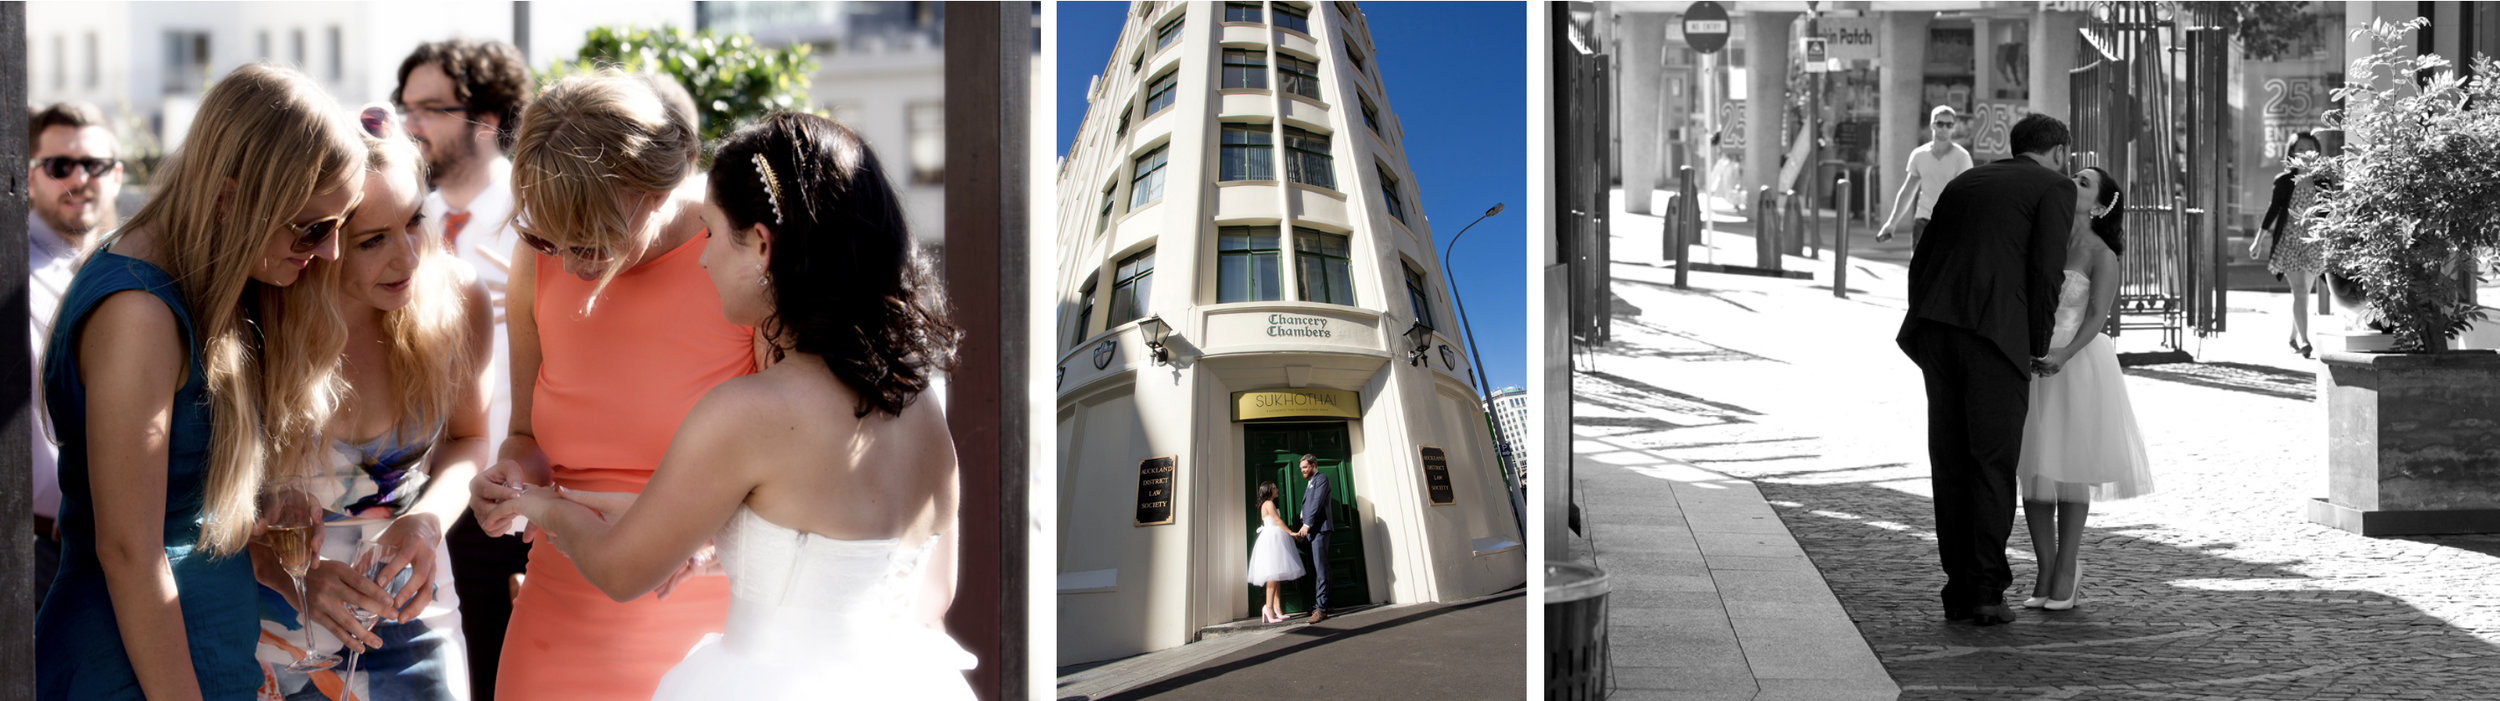 - Wedding PhotographyHalf Day (5 hours) $ 1450, Full Day (10 hours) $2250 includes, planning meeting, rehearsal, photography coverage, edited high res images, travel and gst.